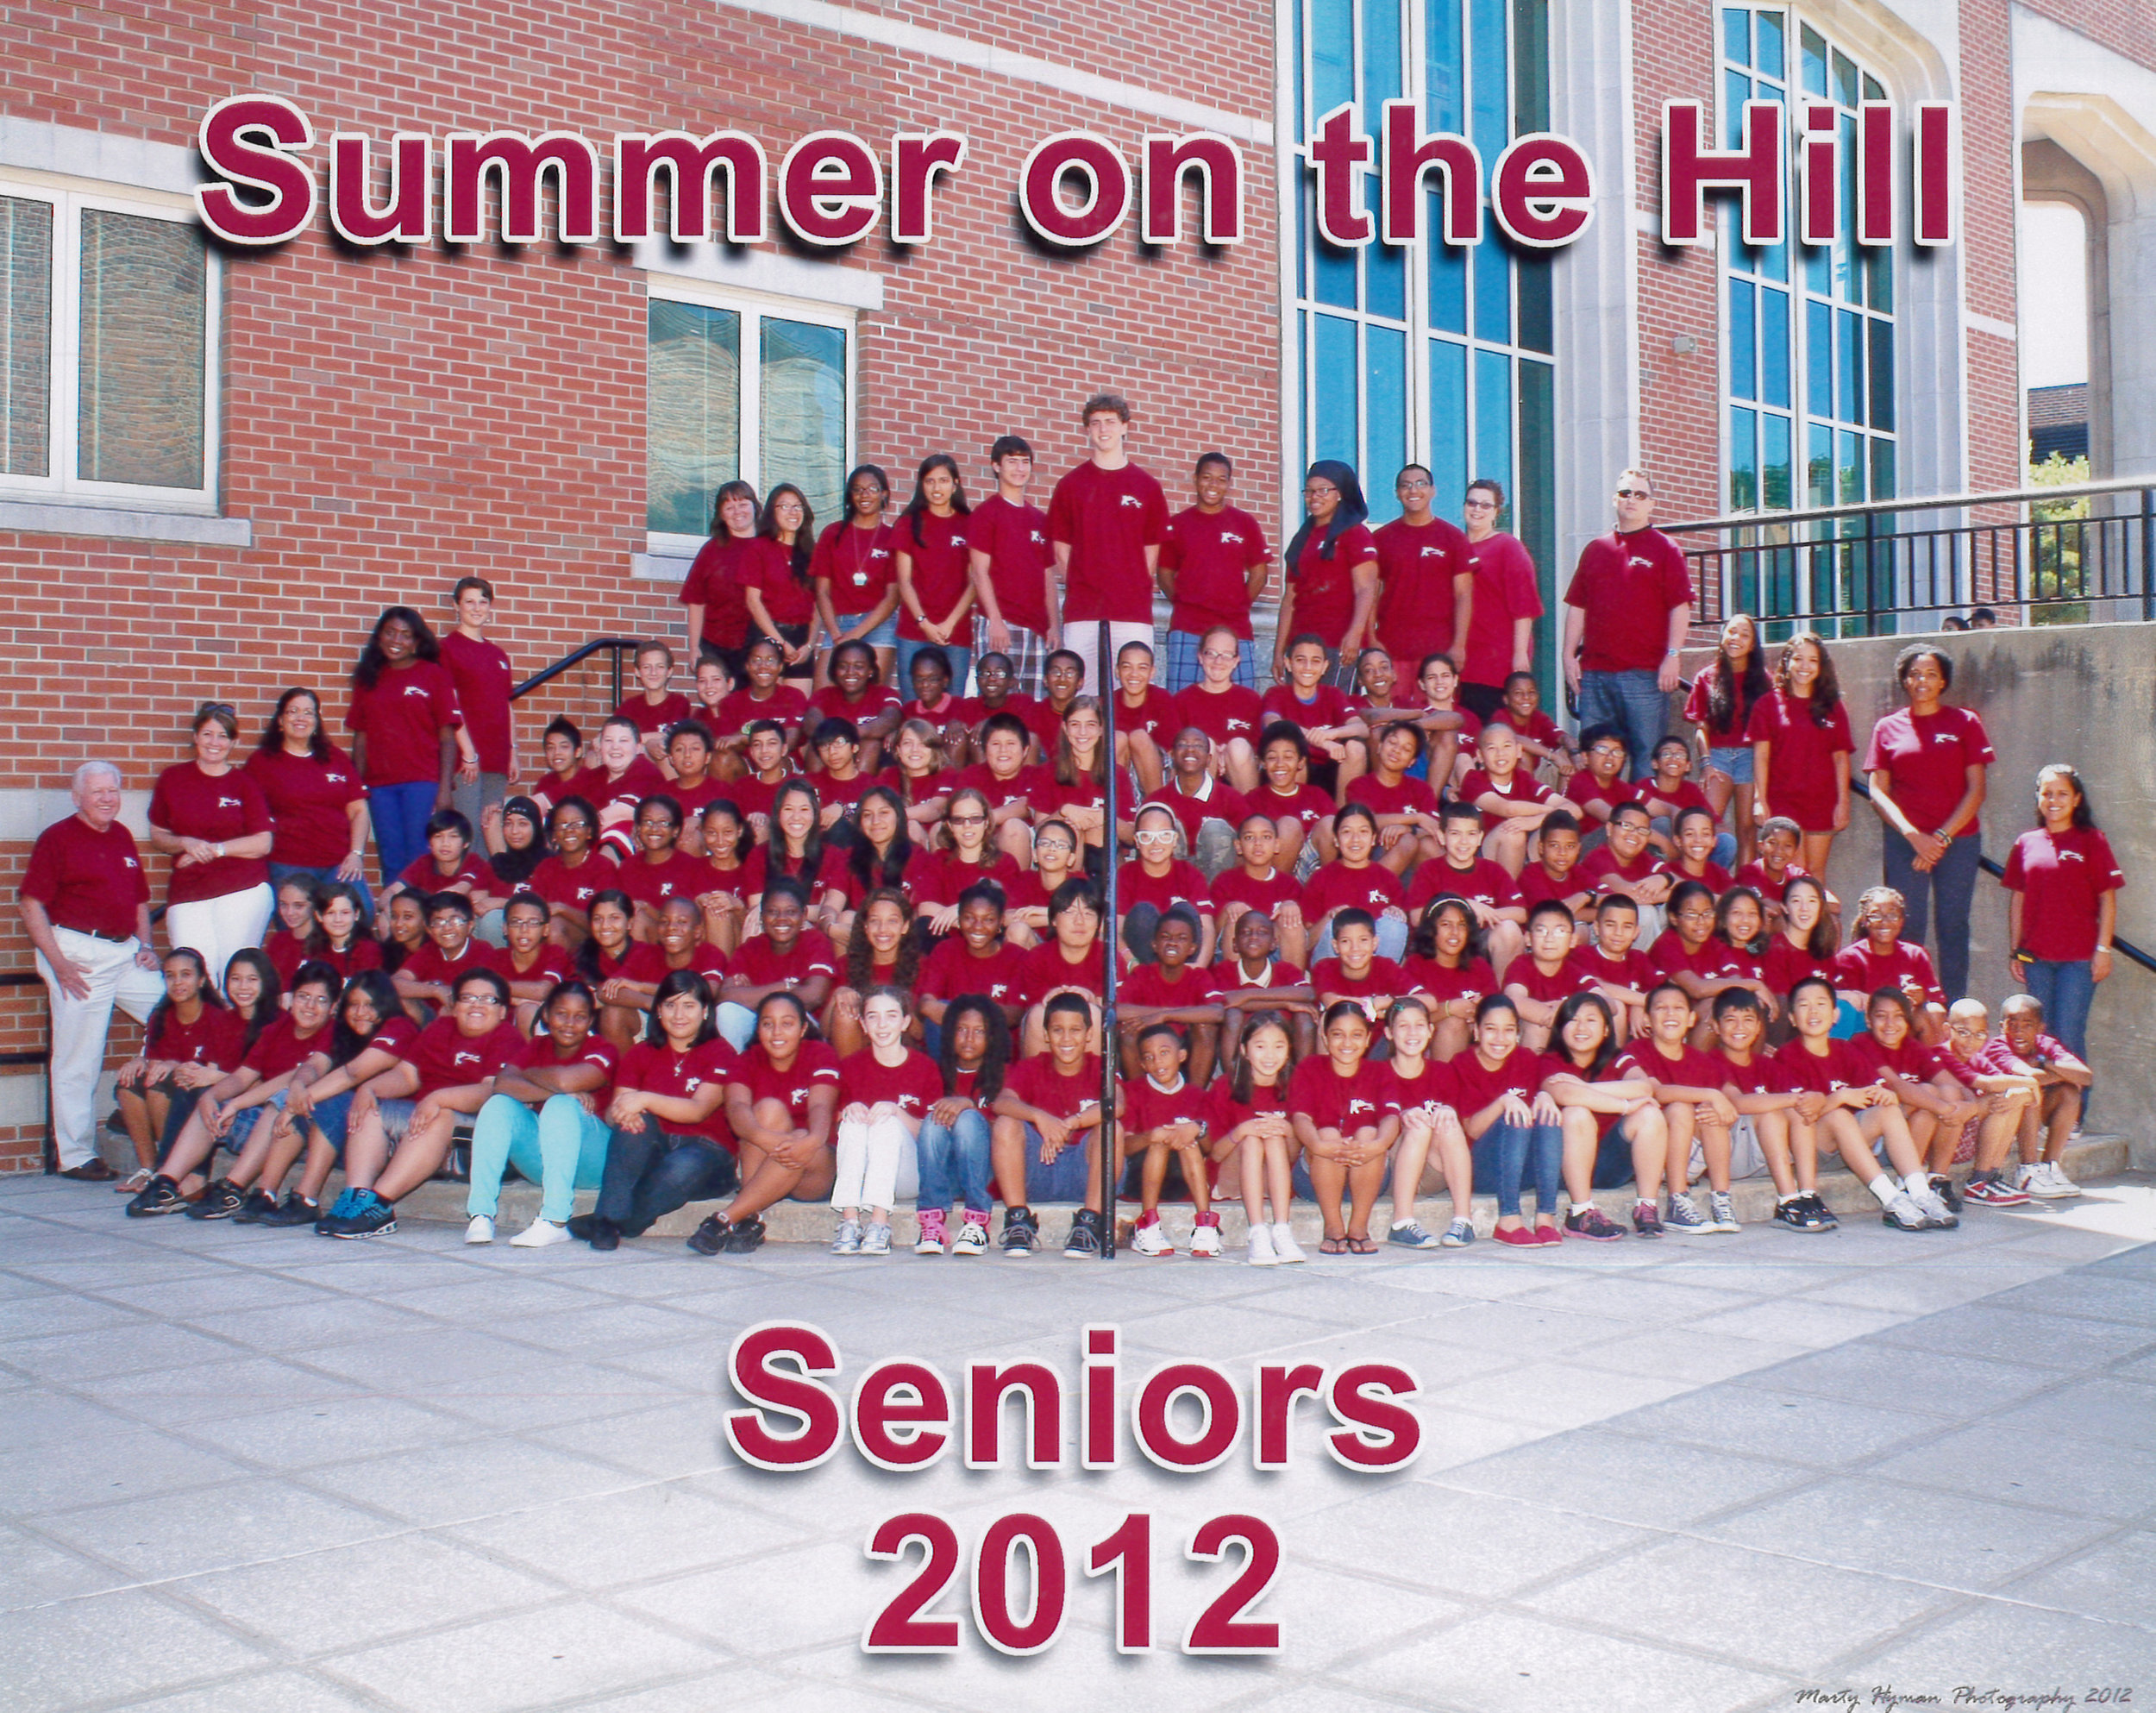 Summer on the Hill 2012